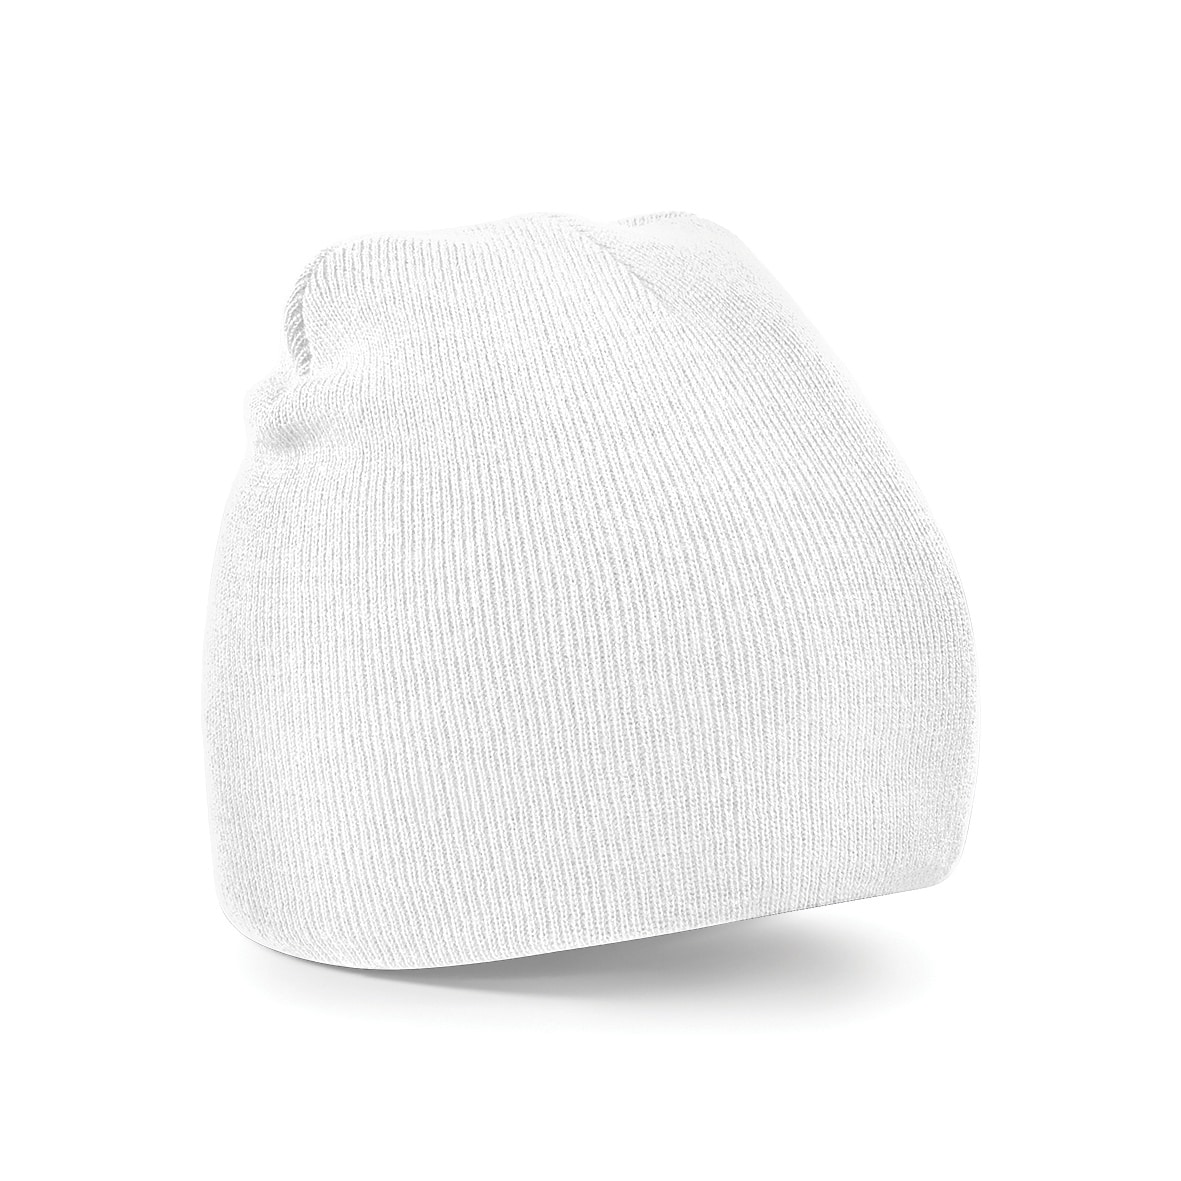 White Embroidered Personalised Beanies from Jageto Embroidery and Print in Essex, UK